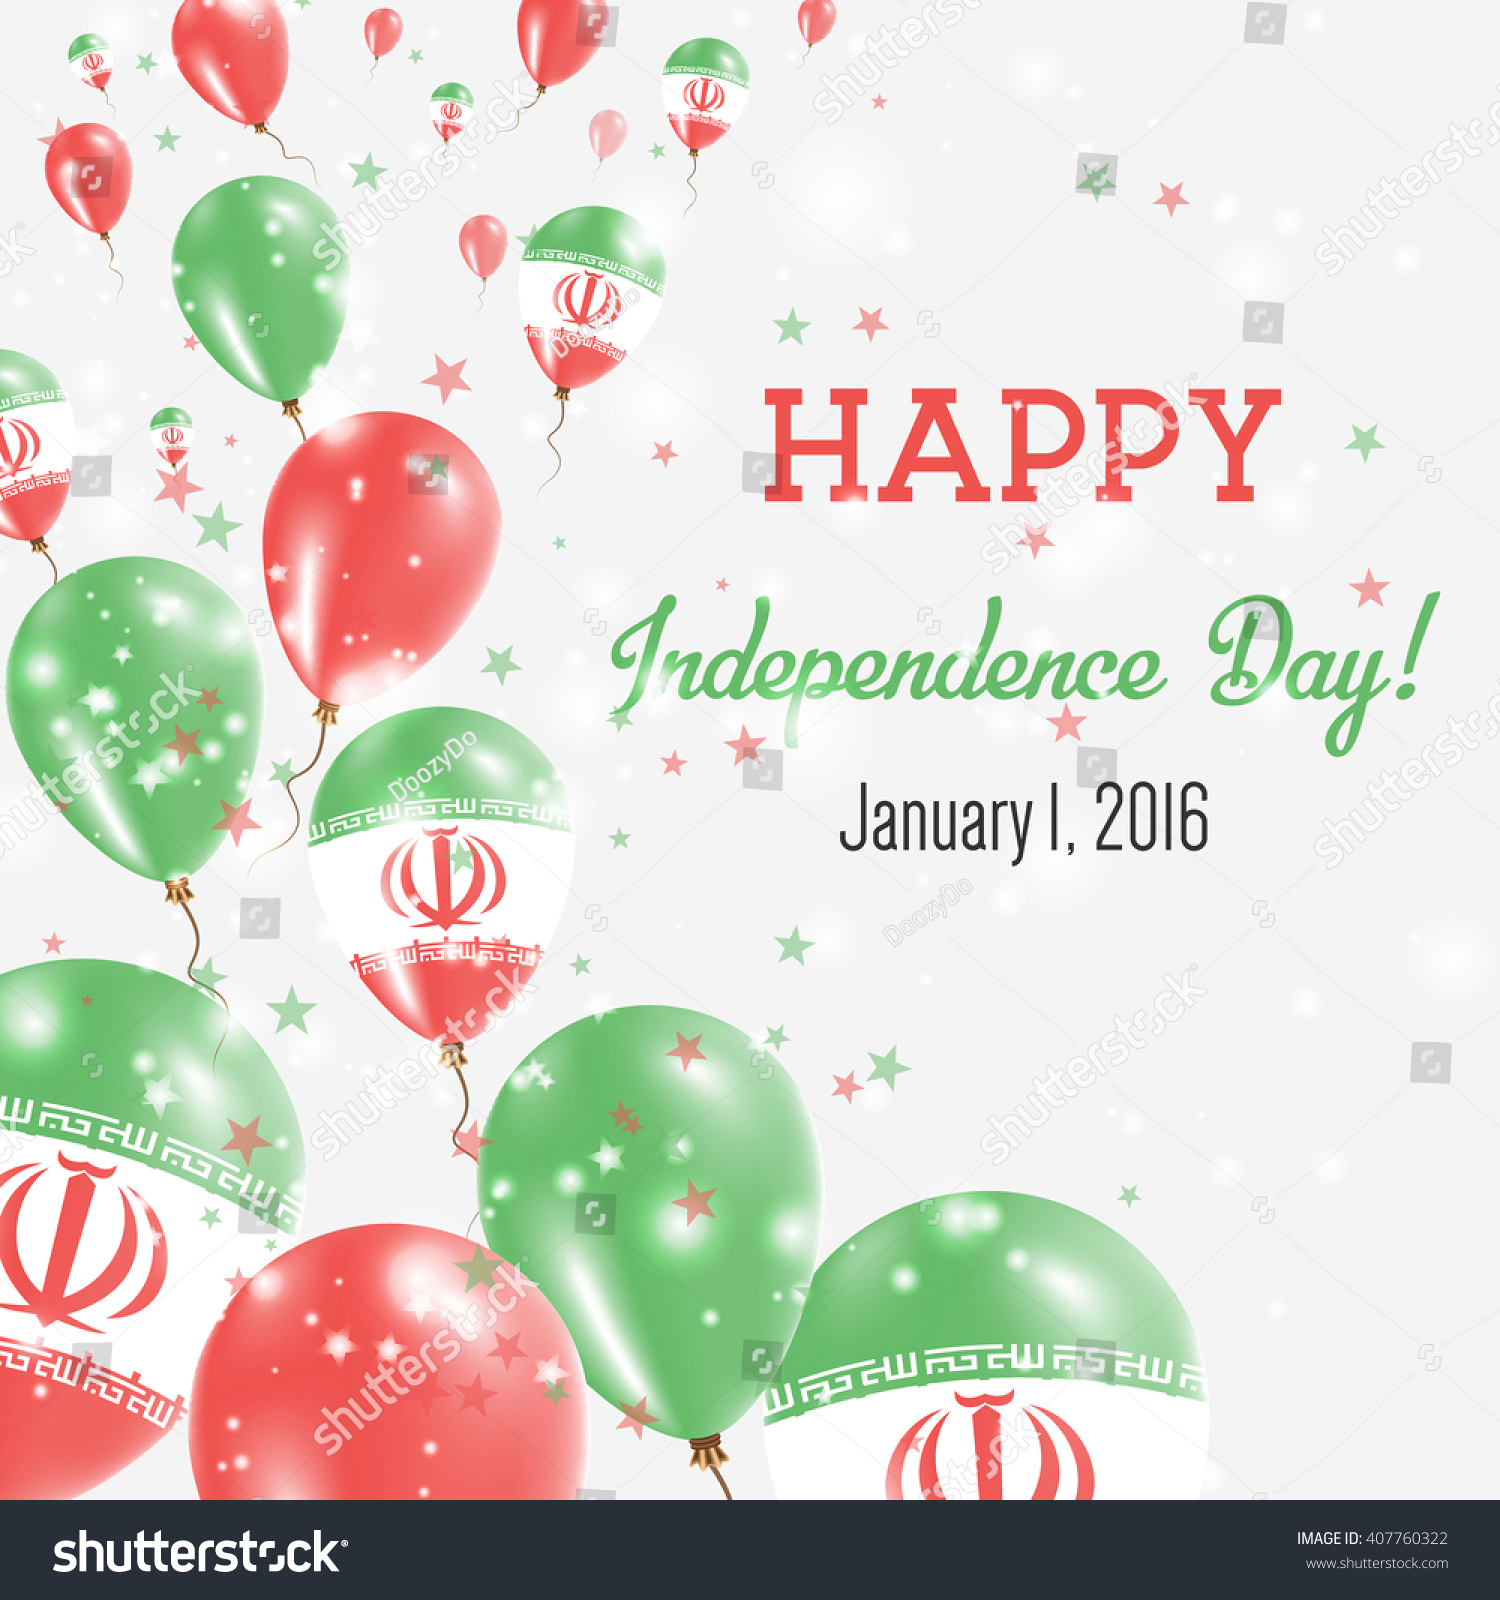 Iran Islamic Republic Independence Day Greeting Stock Vector ...